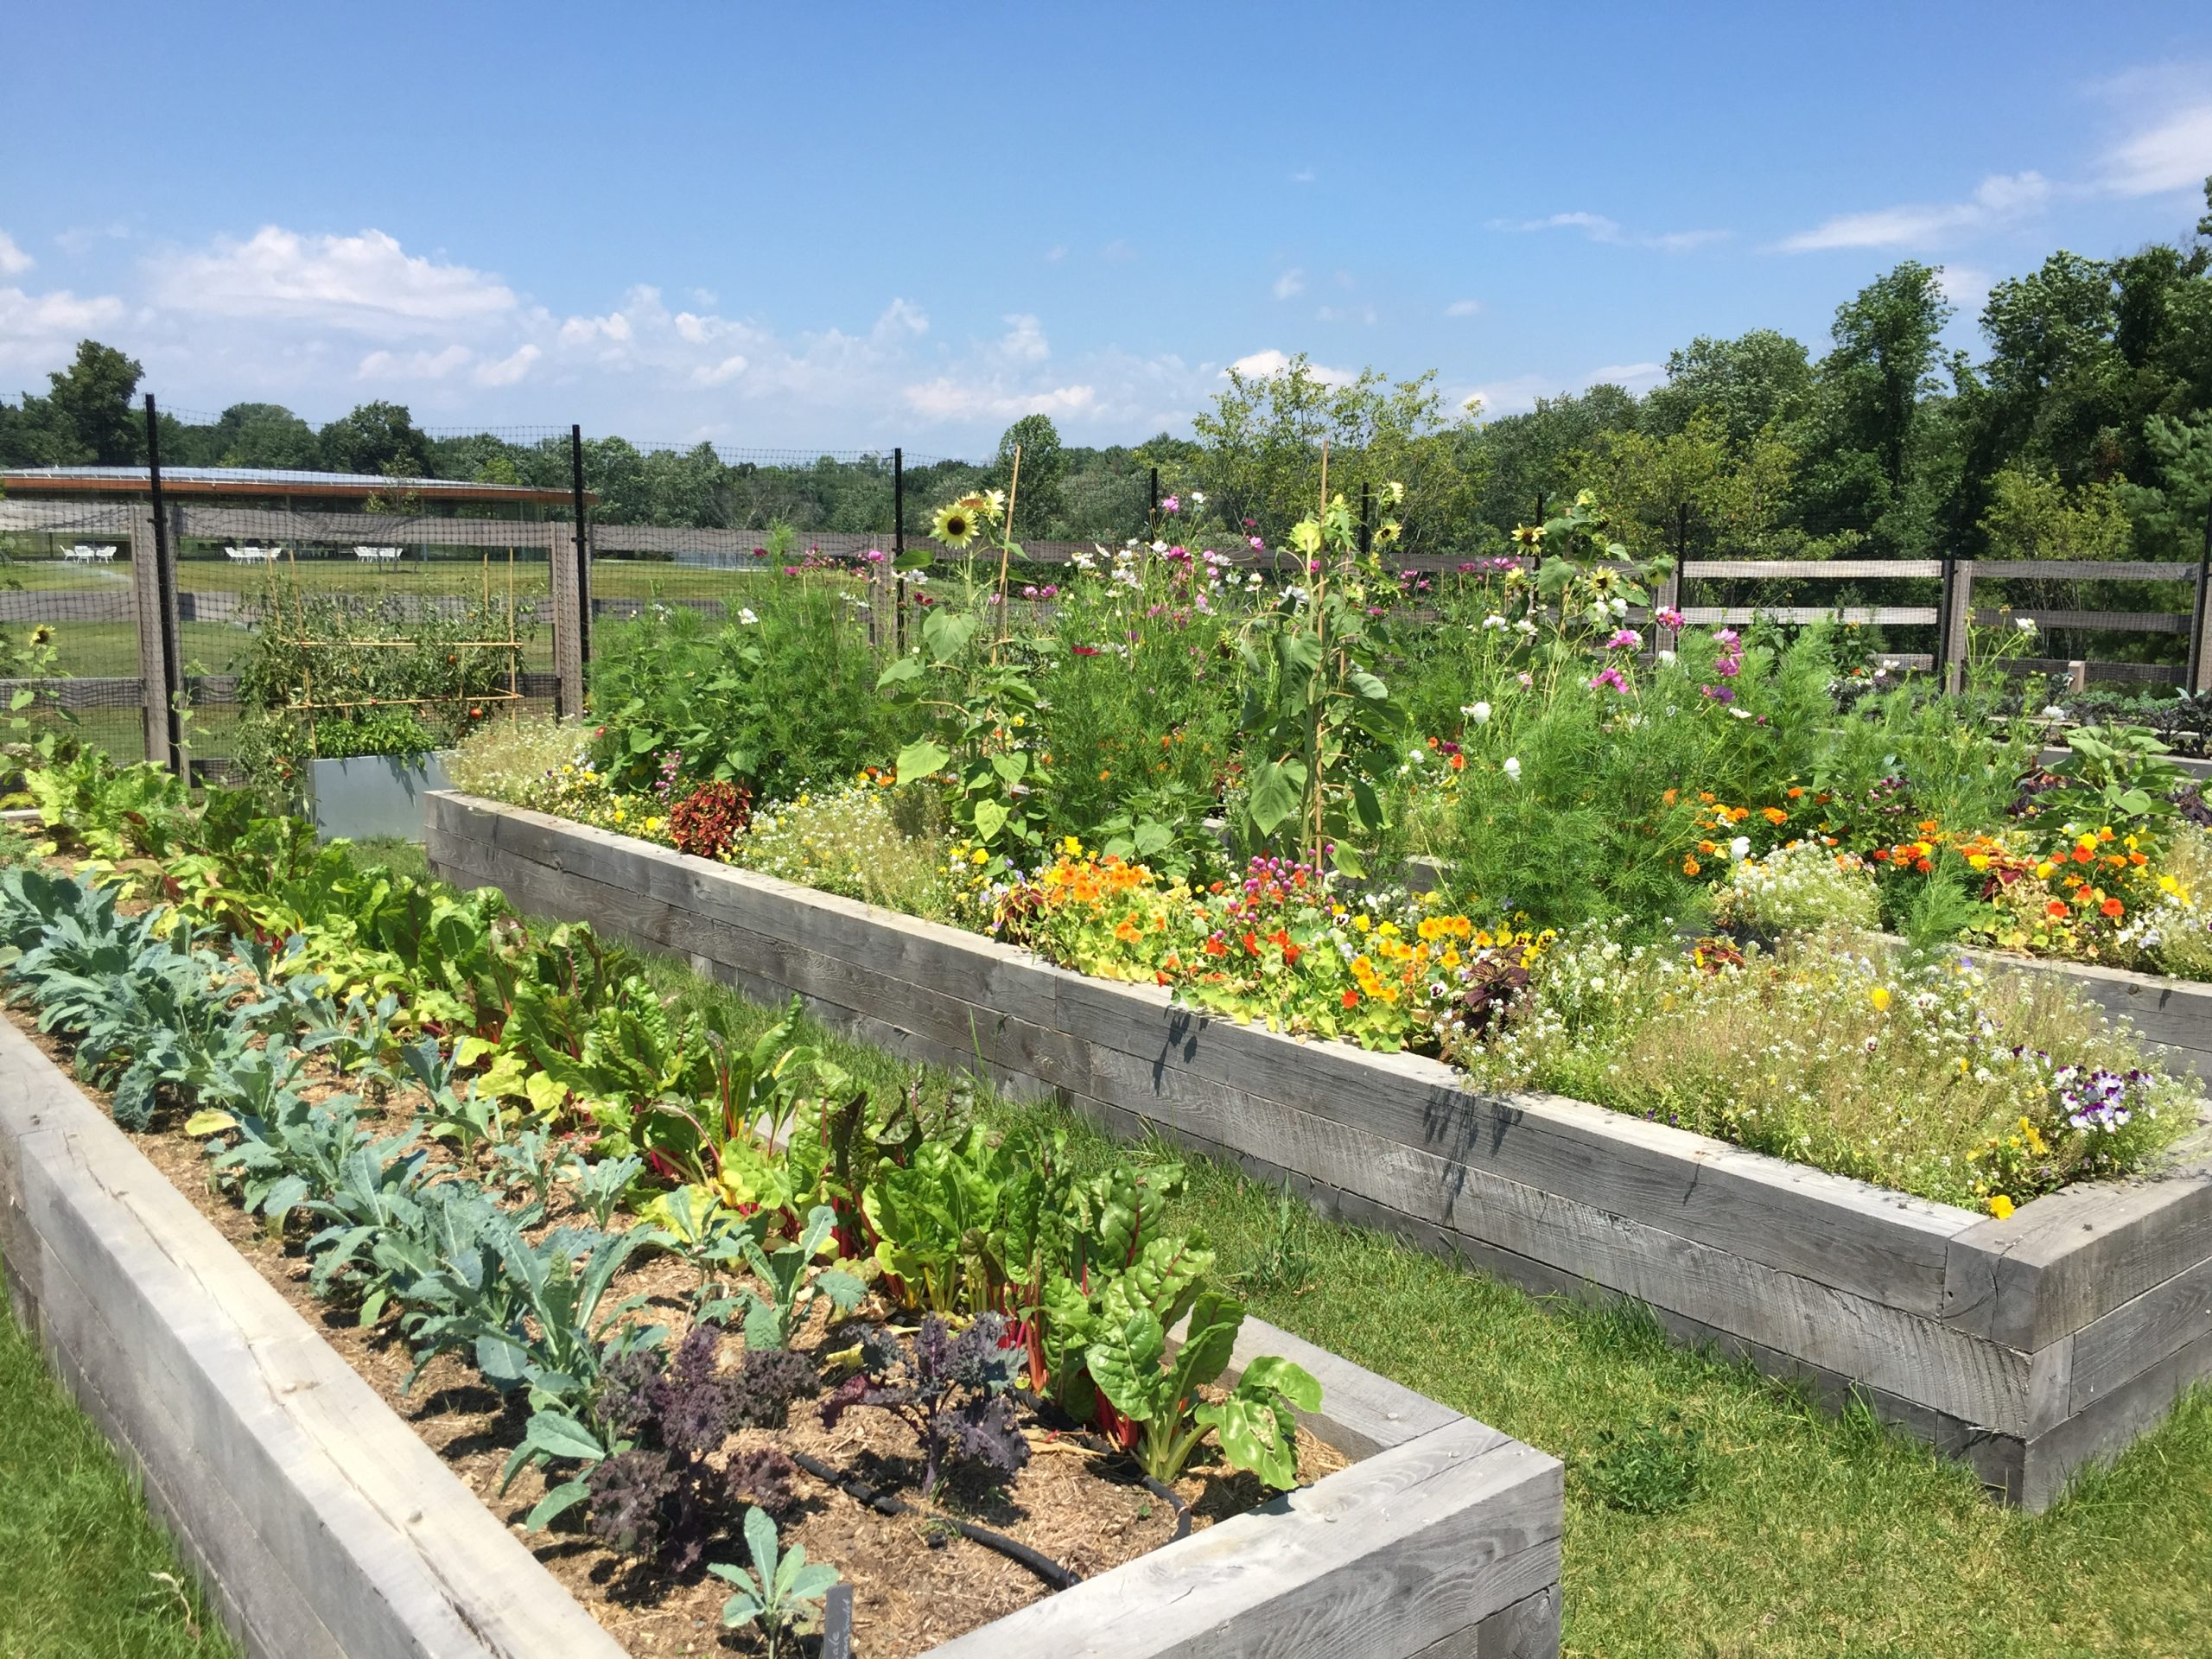 Ways to Learn about Gardening in Local Community